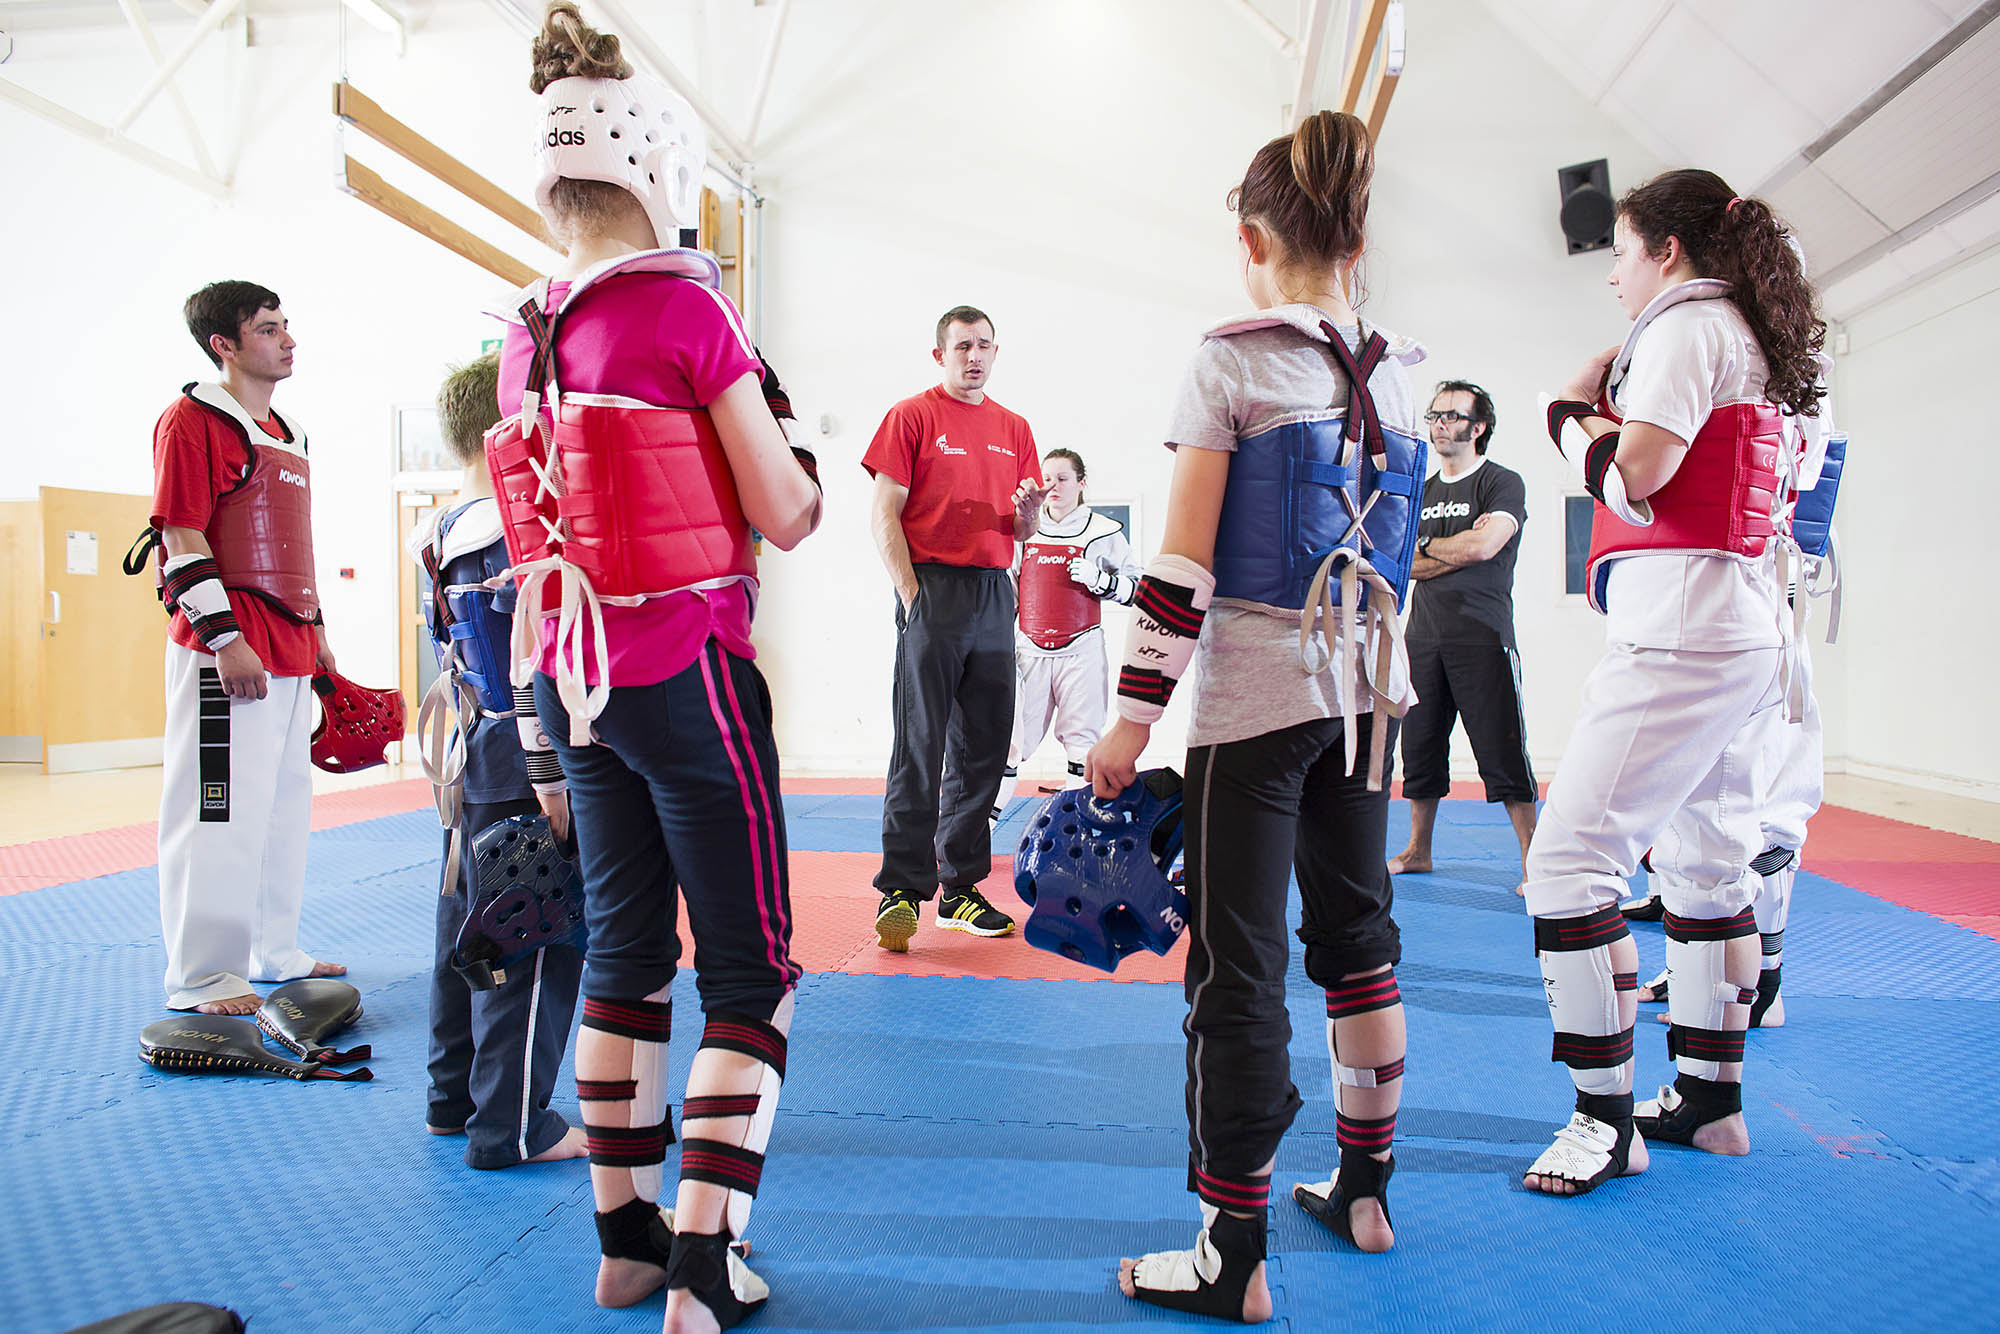 Sport and leisure sector offers golden opportunity for training and employment in Essex